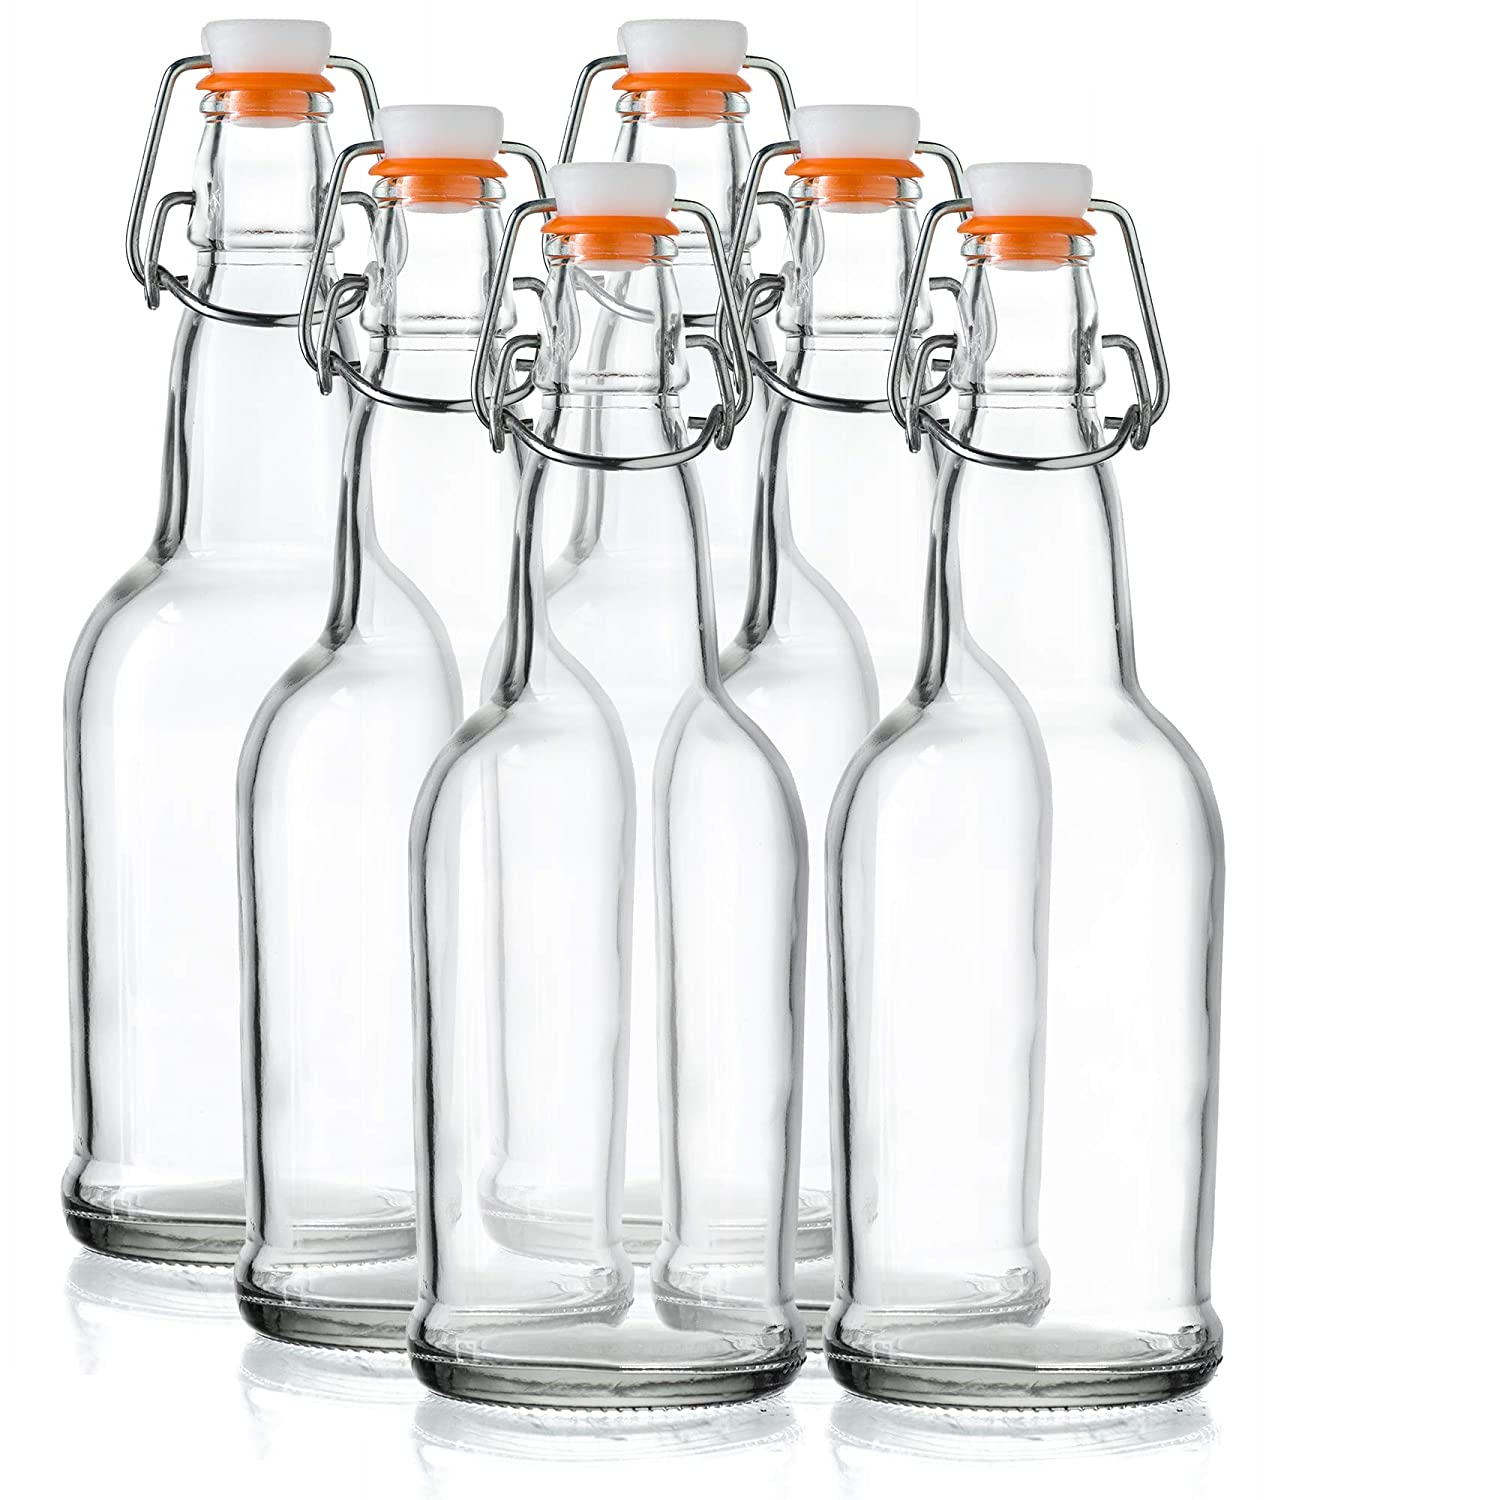 Home Brewing Glass Beer Bottle with Easy Wire Swing Cap & Airtight Rubber Seal - 16oz - Case of 6 - by Tiabo COMINHKPR135443